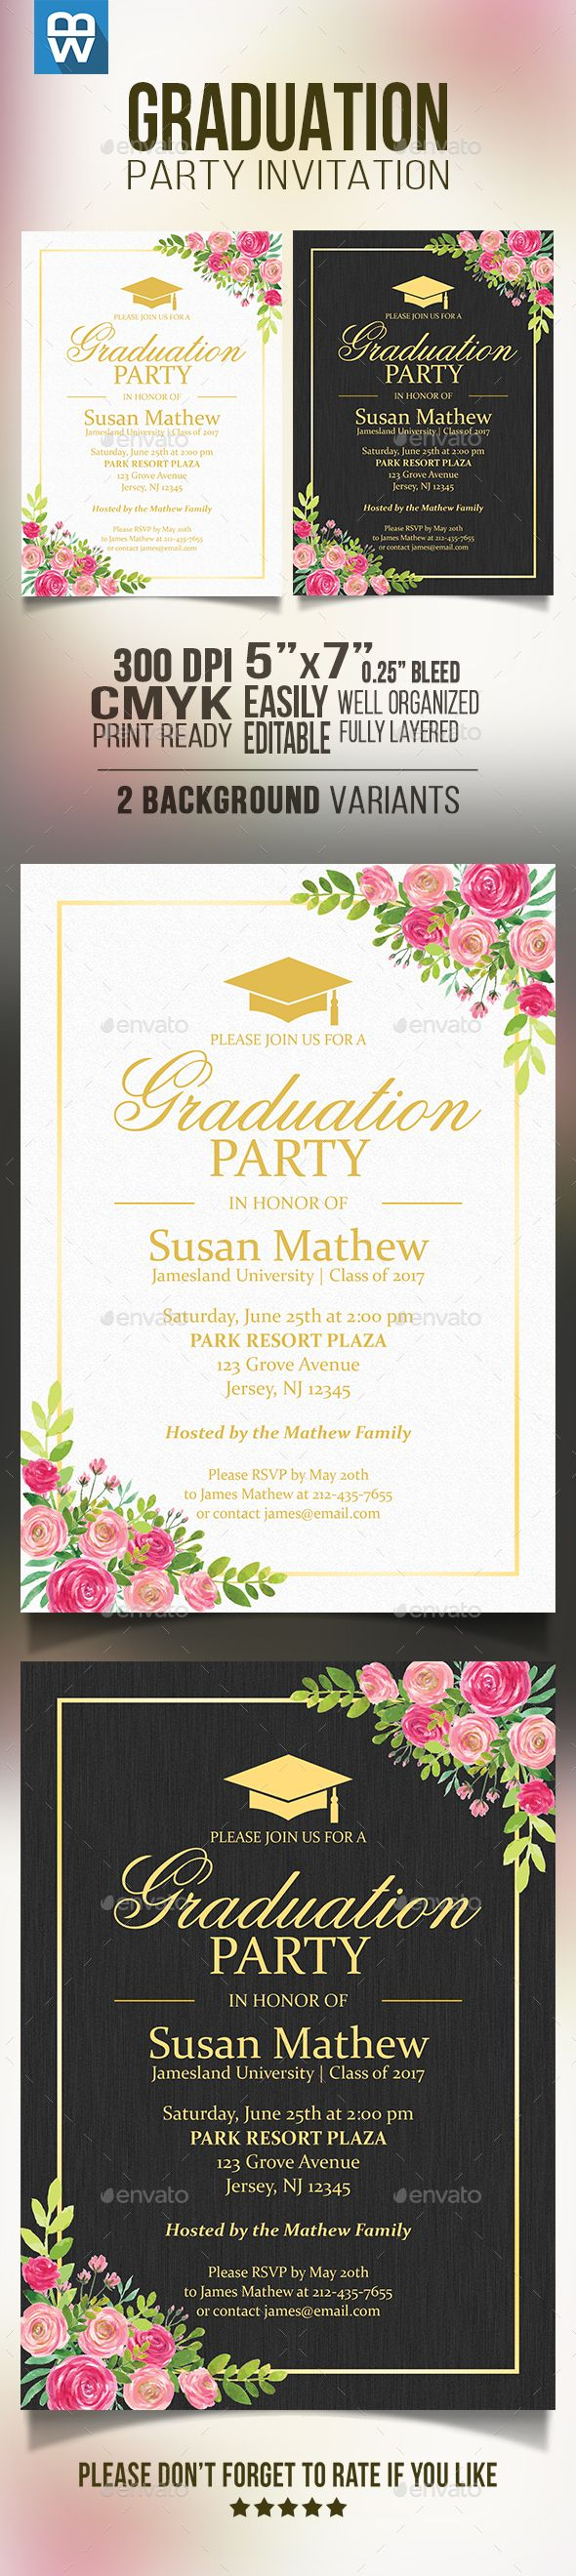 Floral Graduation Party Invitation Template PSD Download Here Graphicriver